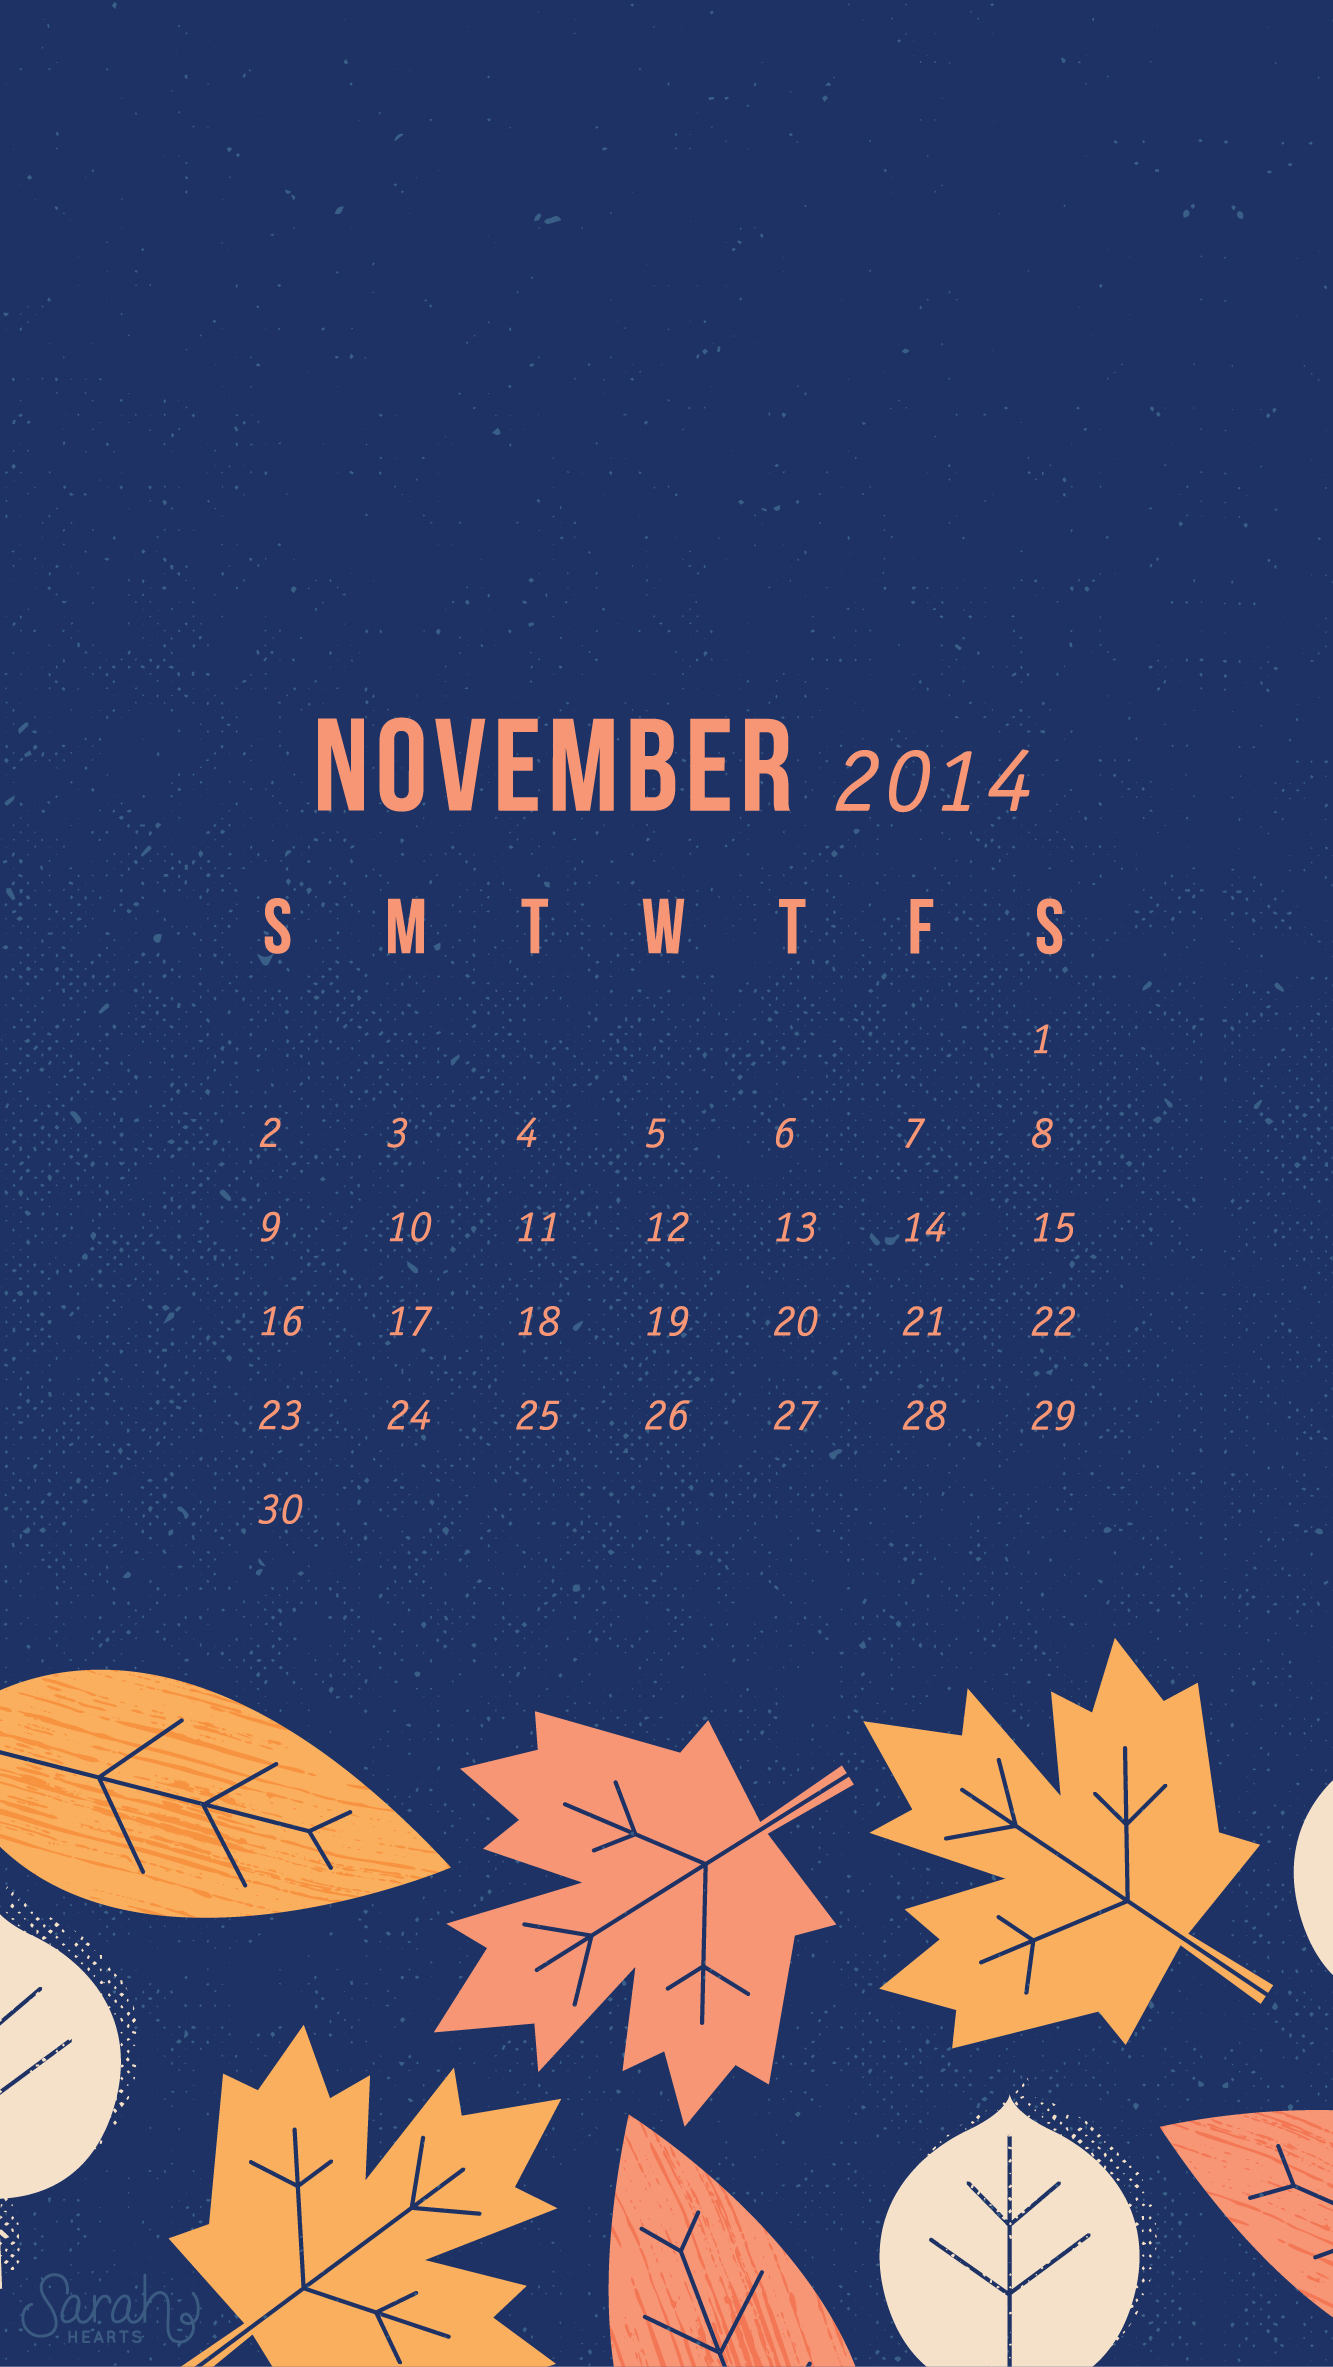 Cute Computer Wallpaper Quote November 2014 Calendar Wallpapers Sarah Hearts